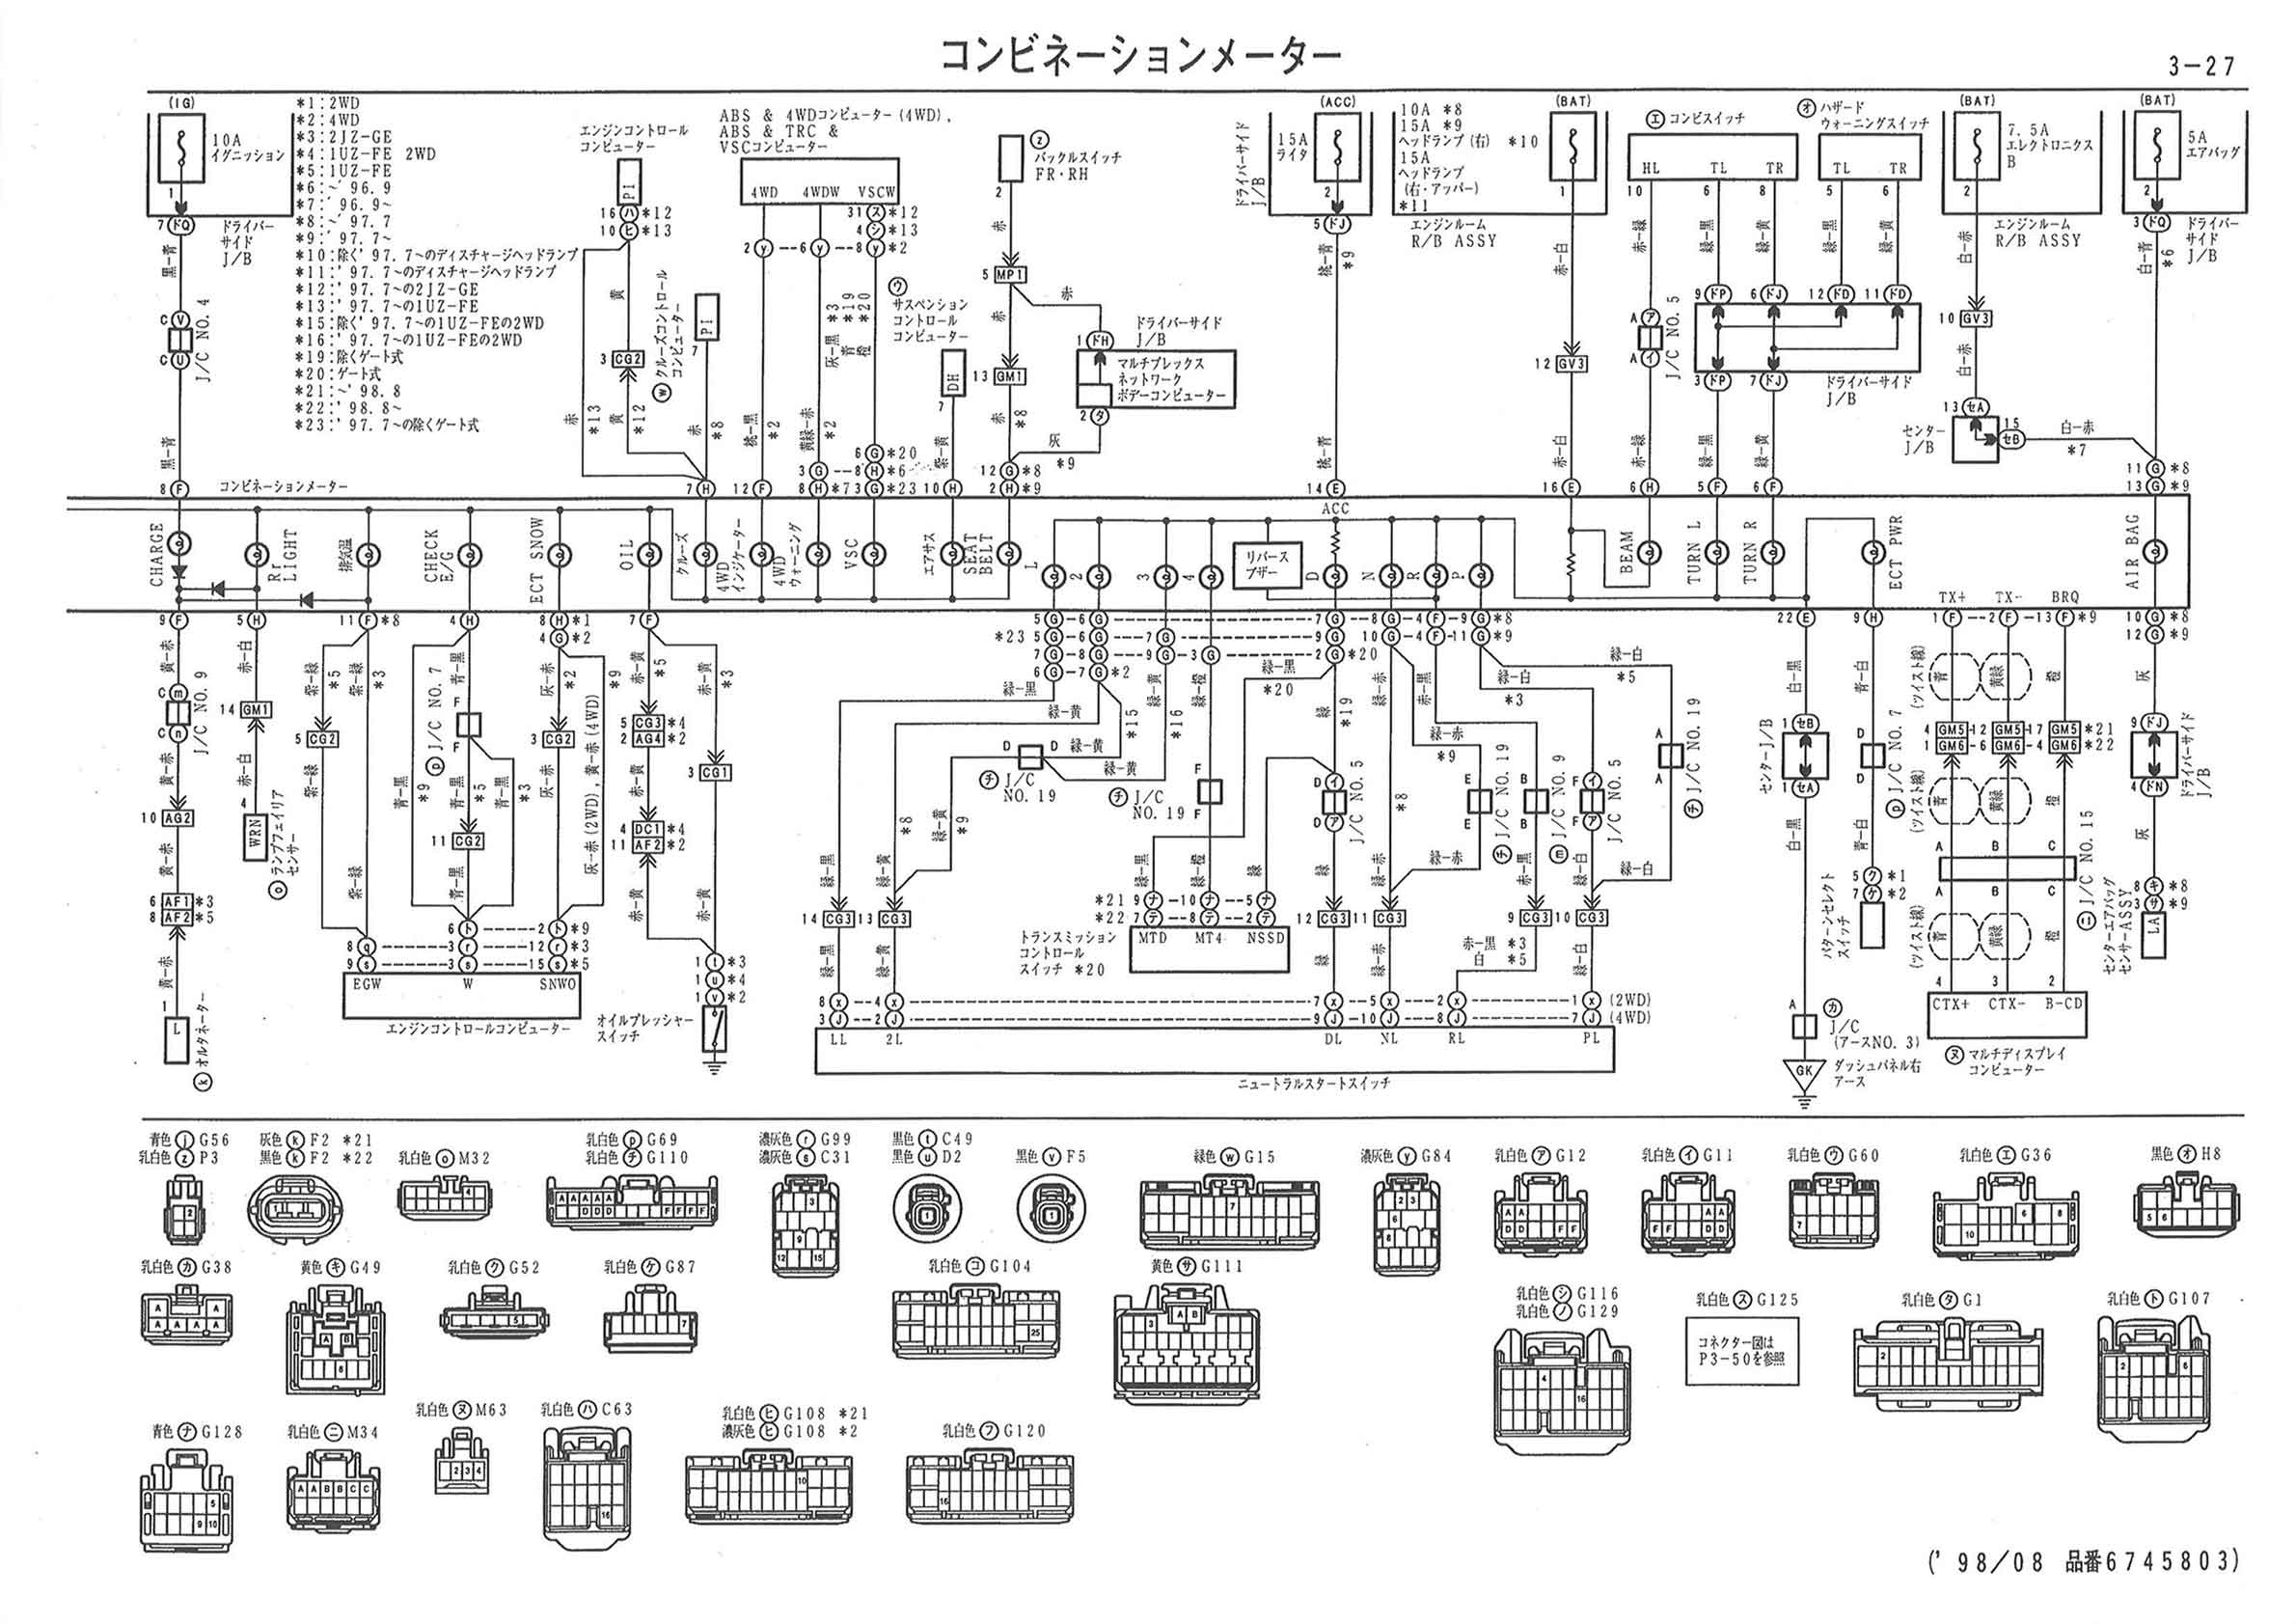 2JZ GE VVT i 11 ge vvt i 11 2jz ge wiring diagram pdf at edmiracle.co